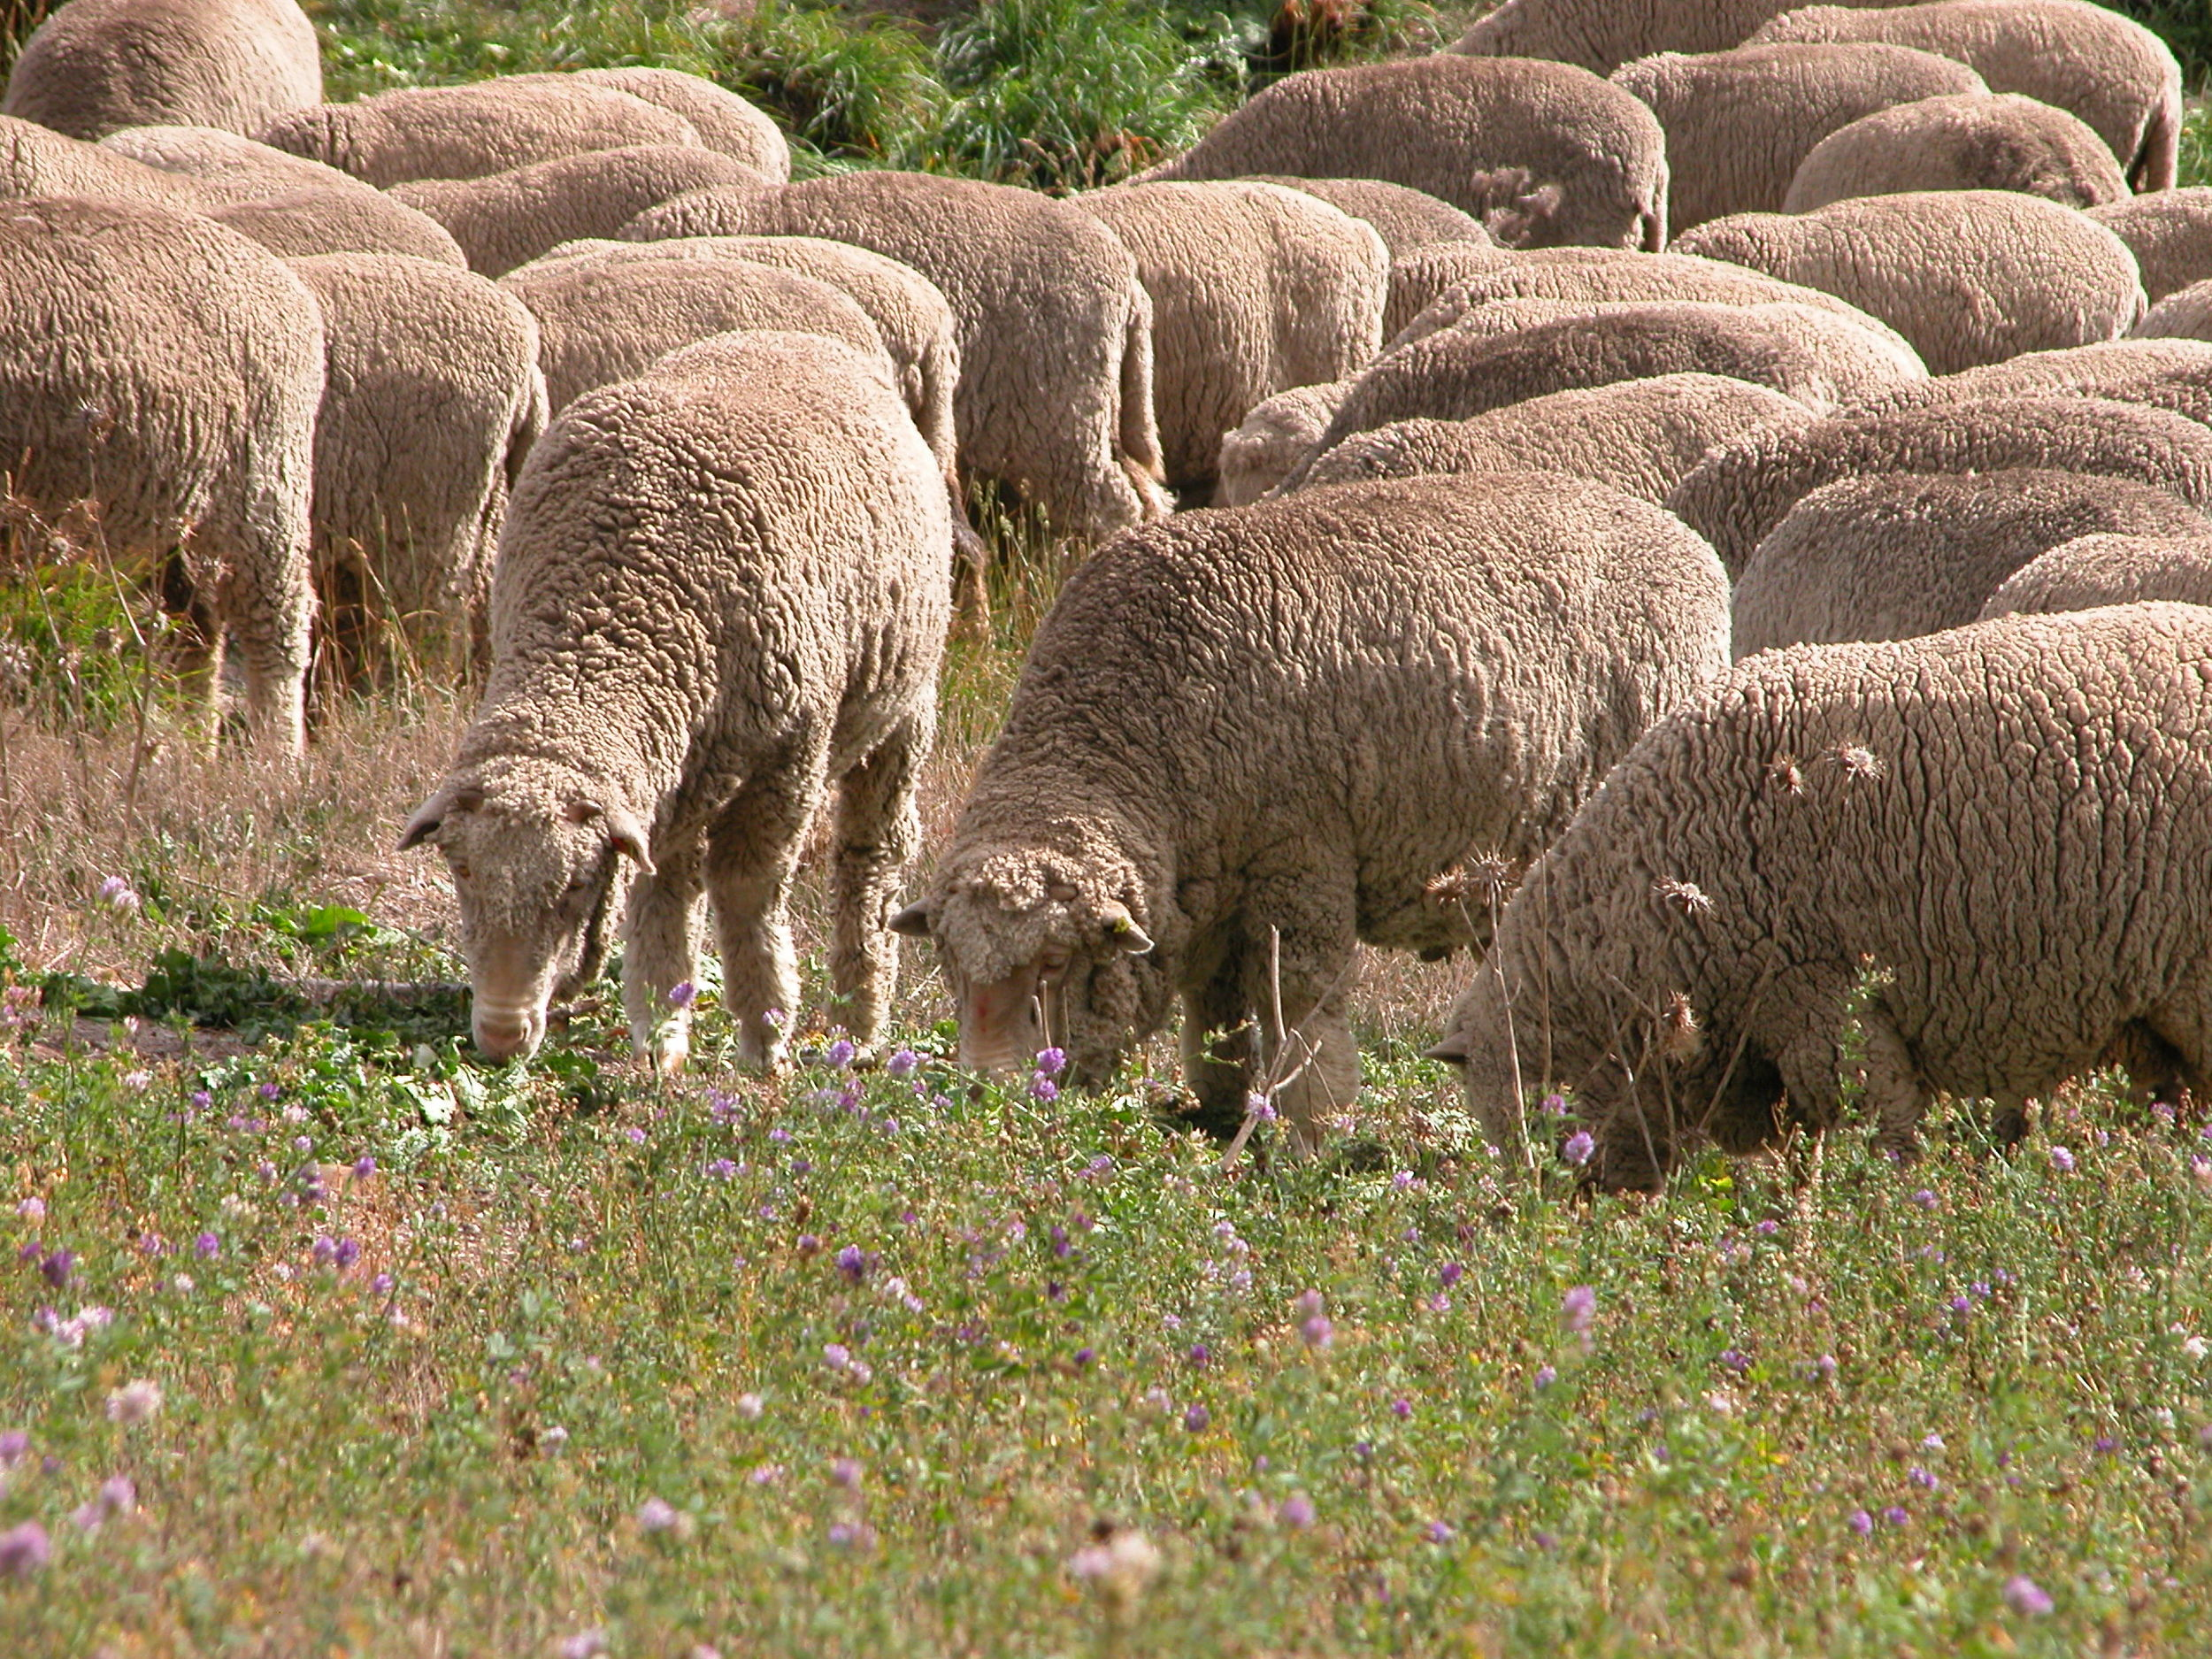 P8: Having pretty much had their fill of lucerne by now, these enterprising sheep are actually eating thistle rosettes in the gully.